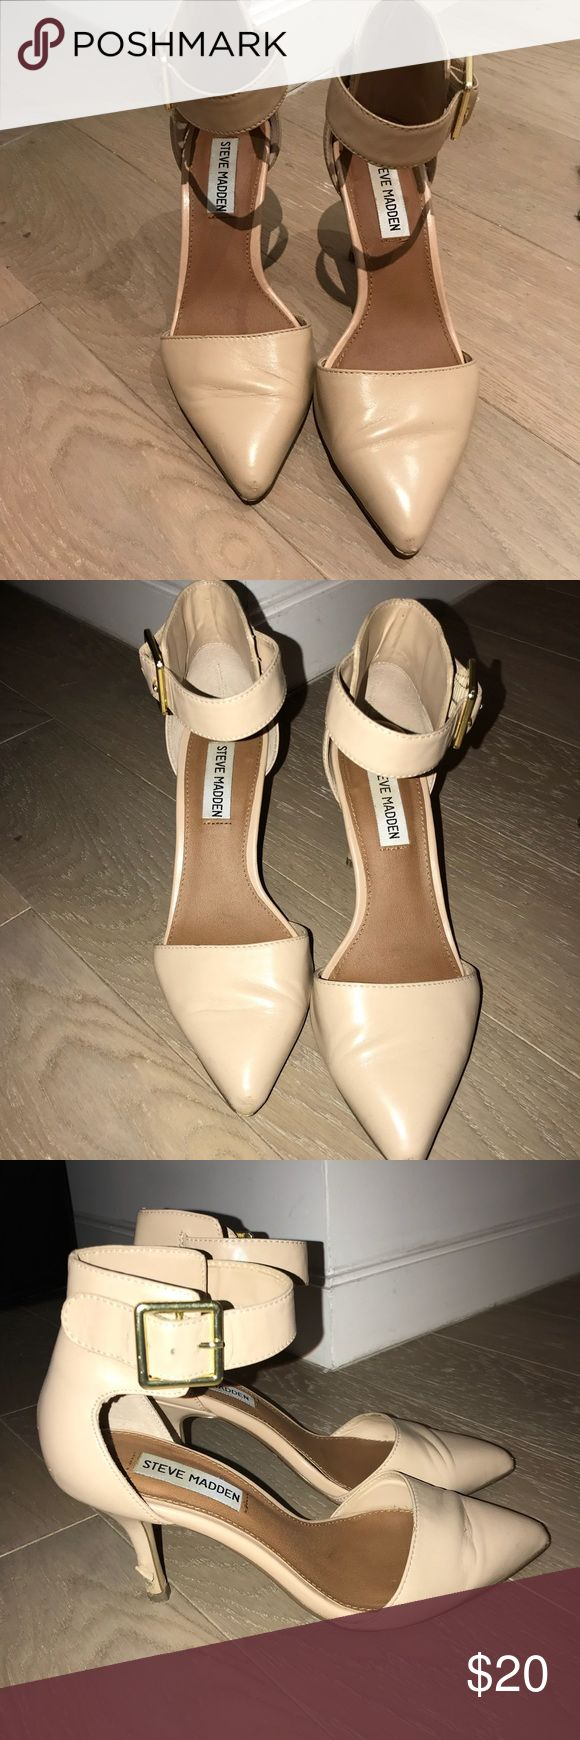 Steve Madden Ankle Strap Nude Pump Steve Madden Classic Nude Pointy Toe Ankle Strap Pump. Low heel makes them great for work. Slightly worn heel but plastic cover could easily be replaced at your local shoe repair store...I've had it done to other shoes for $10 :) Steve Madden Shoes Heels #anklestrapsheelslow